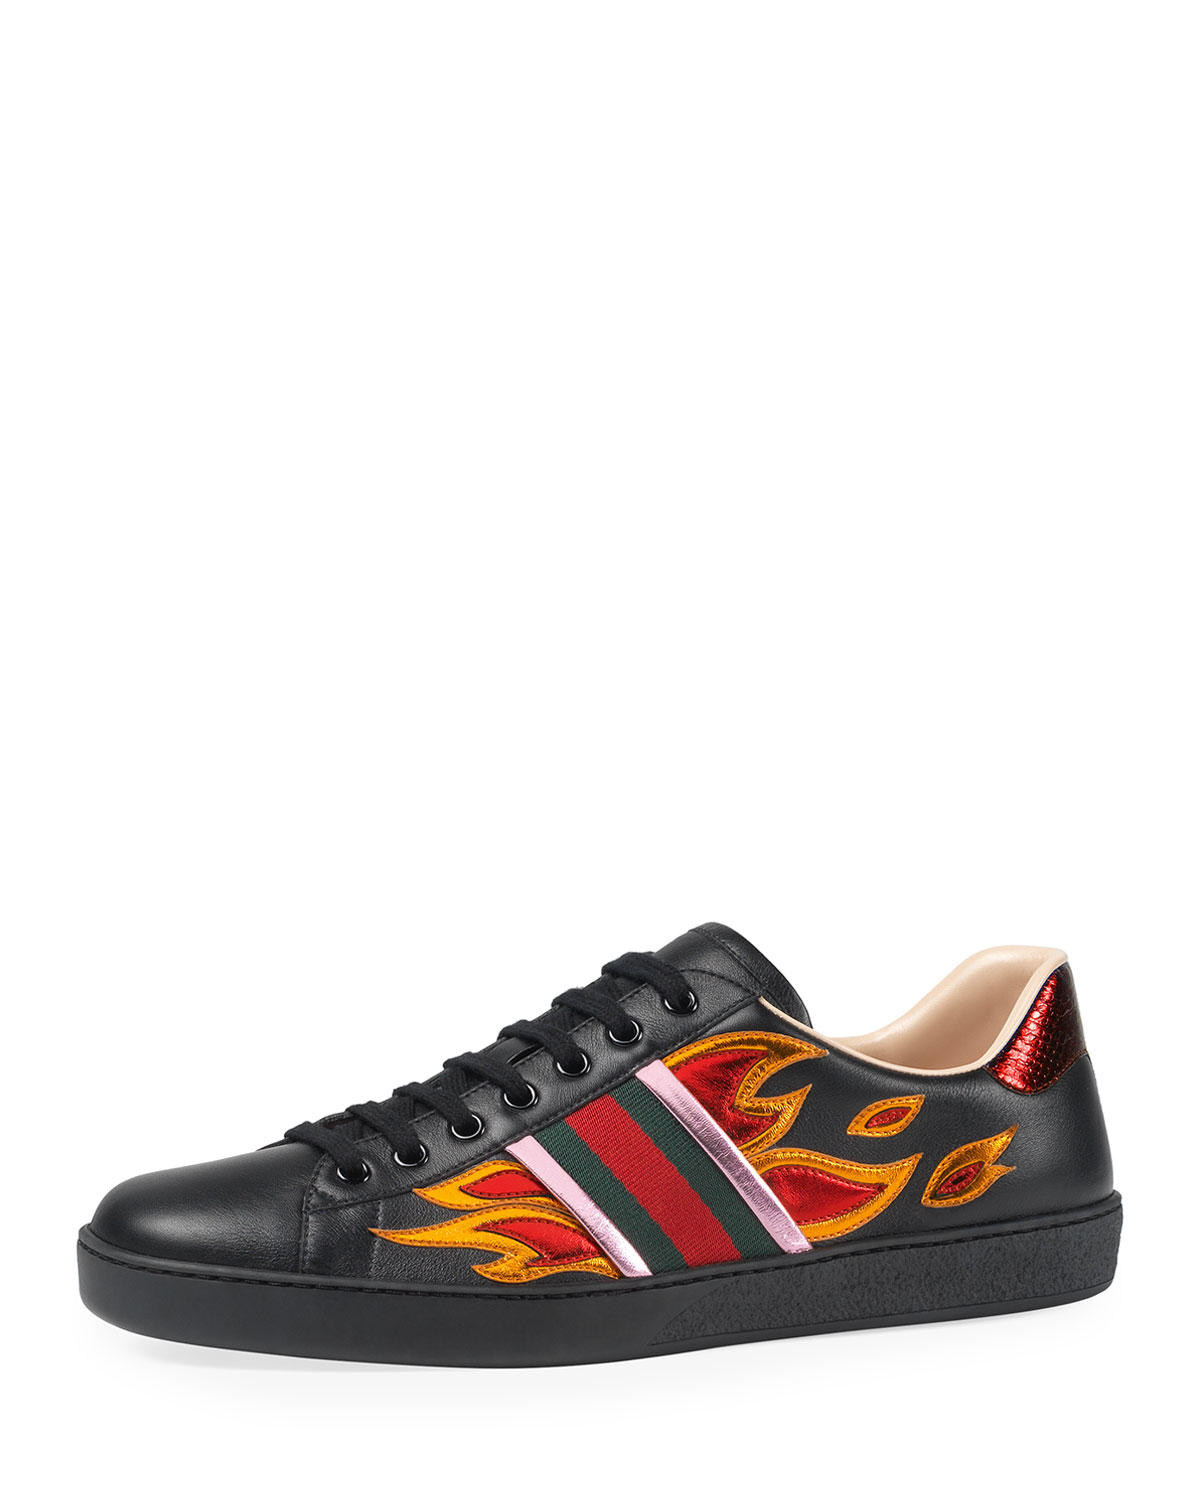 lyst gucci new ace flames leather low top sneaker in. Black Bedroom Furniture Sets. Home Design Ideas